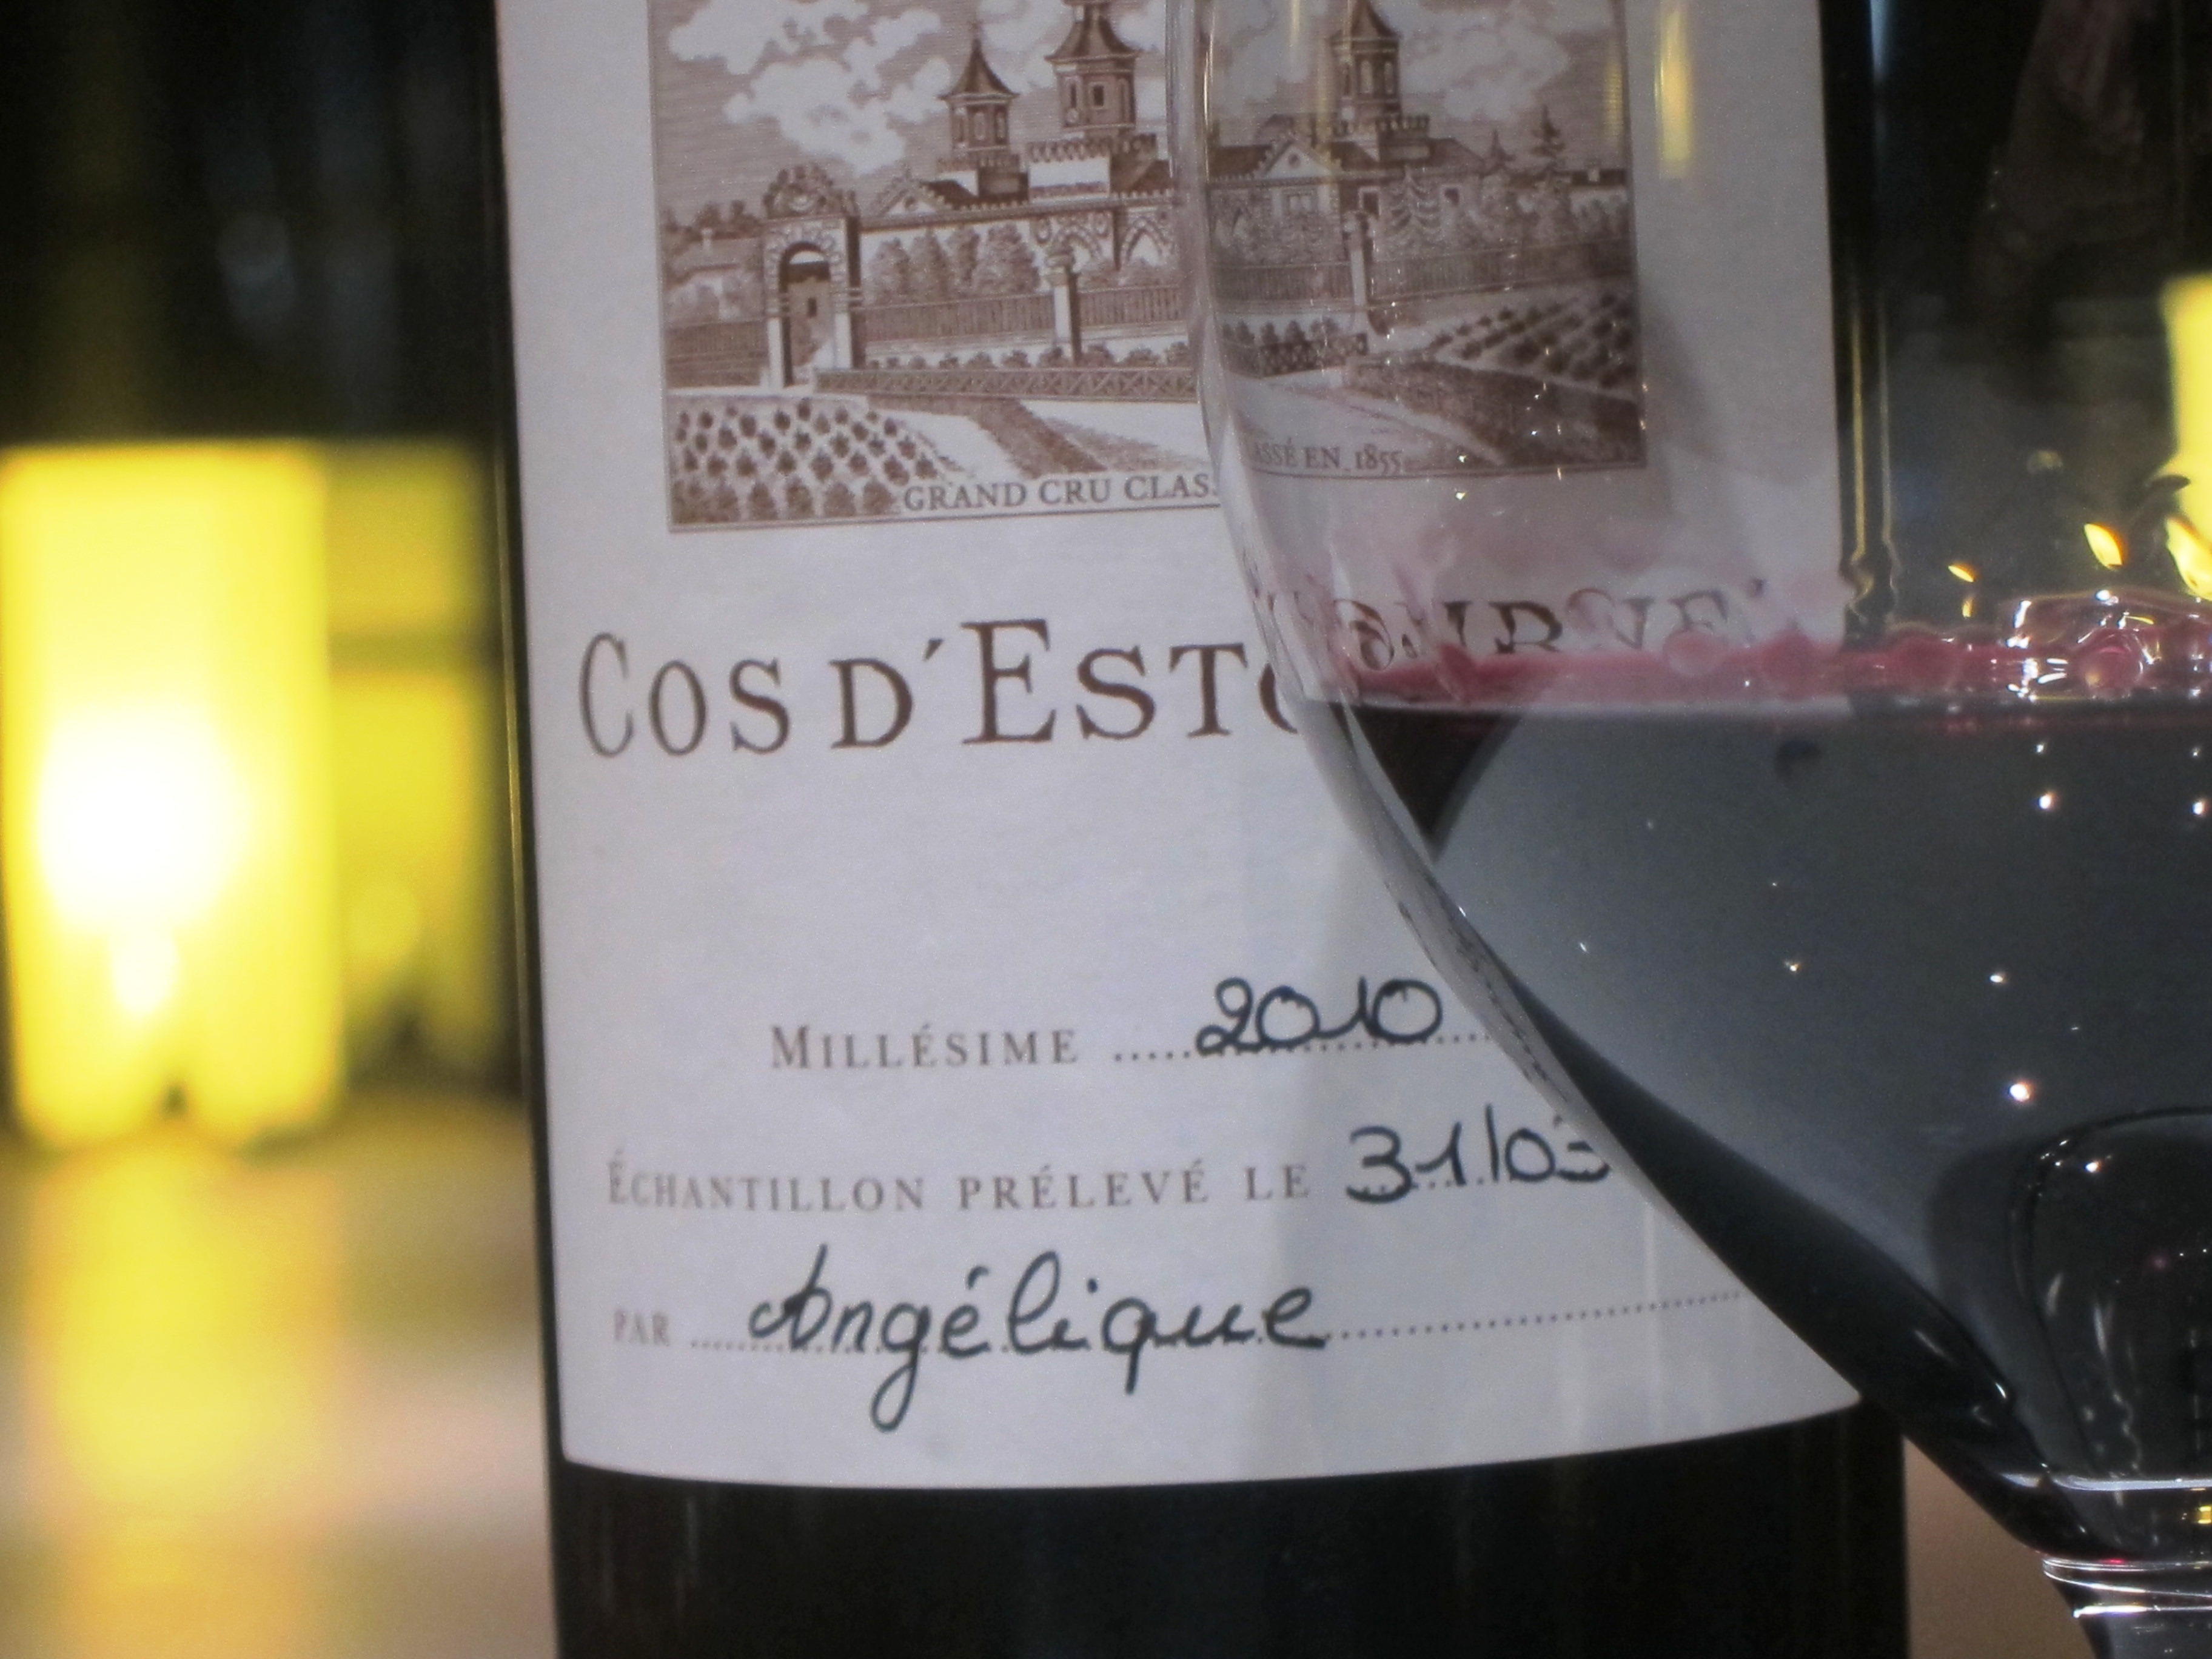 2010 Bordeaux St. Estephe wine